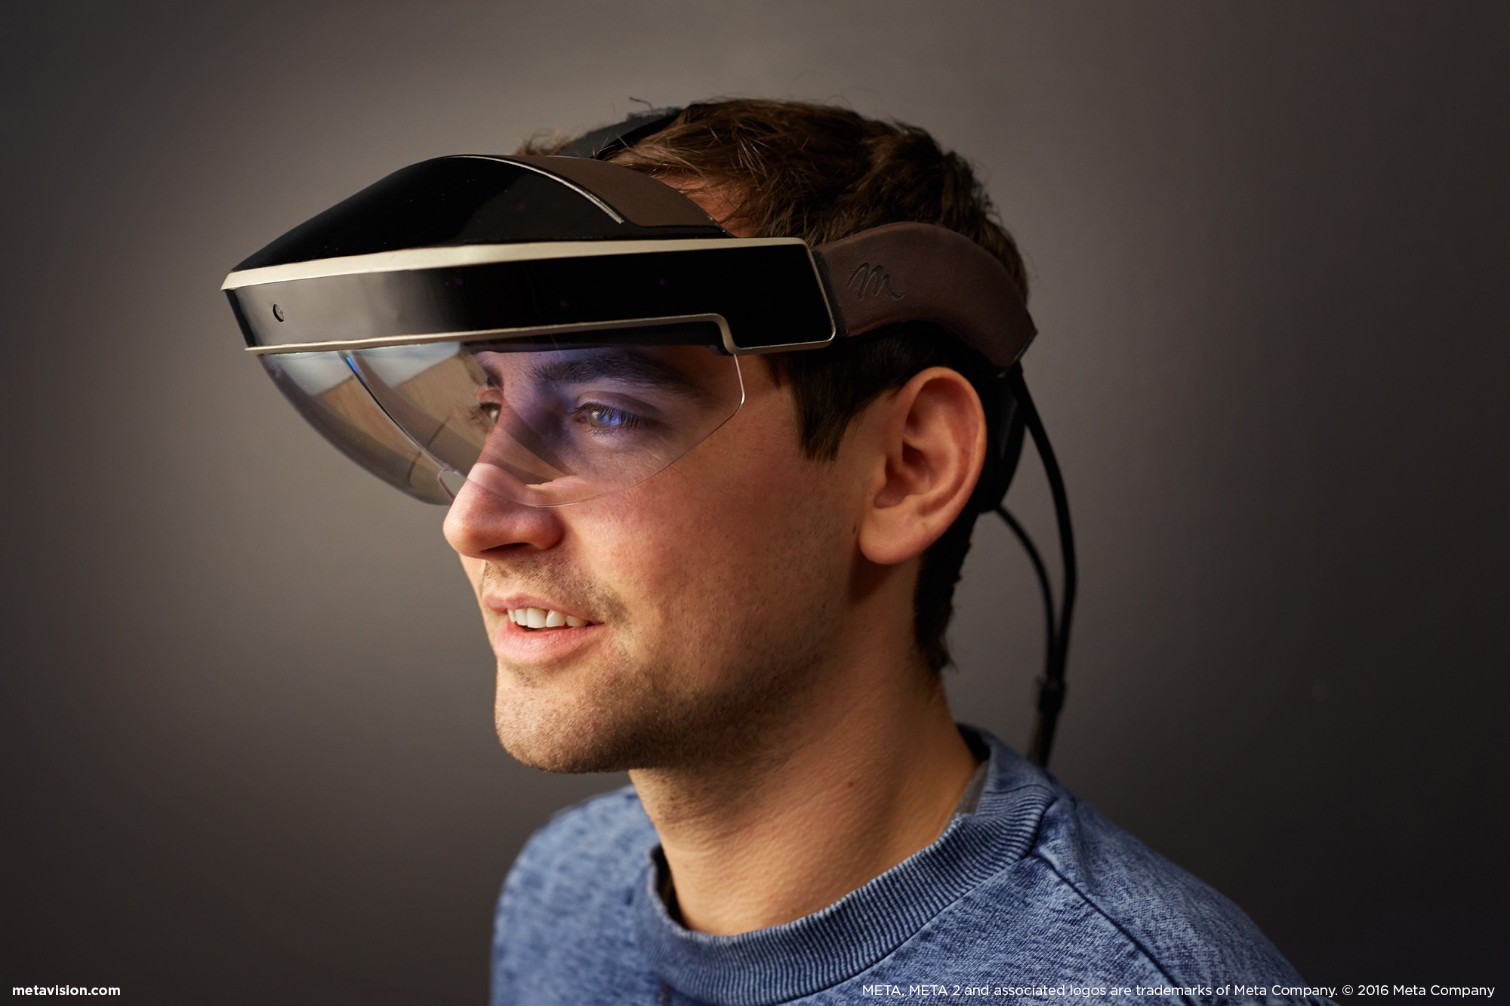 Worldwide VR / AR headset market to hit 100 million devices